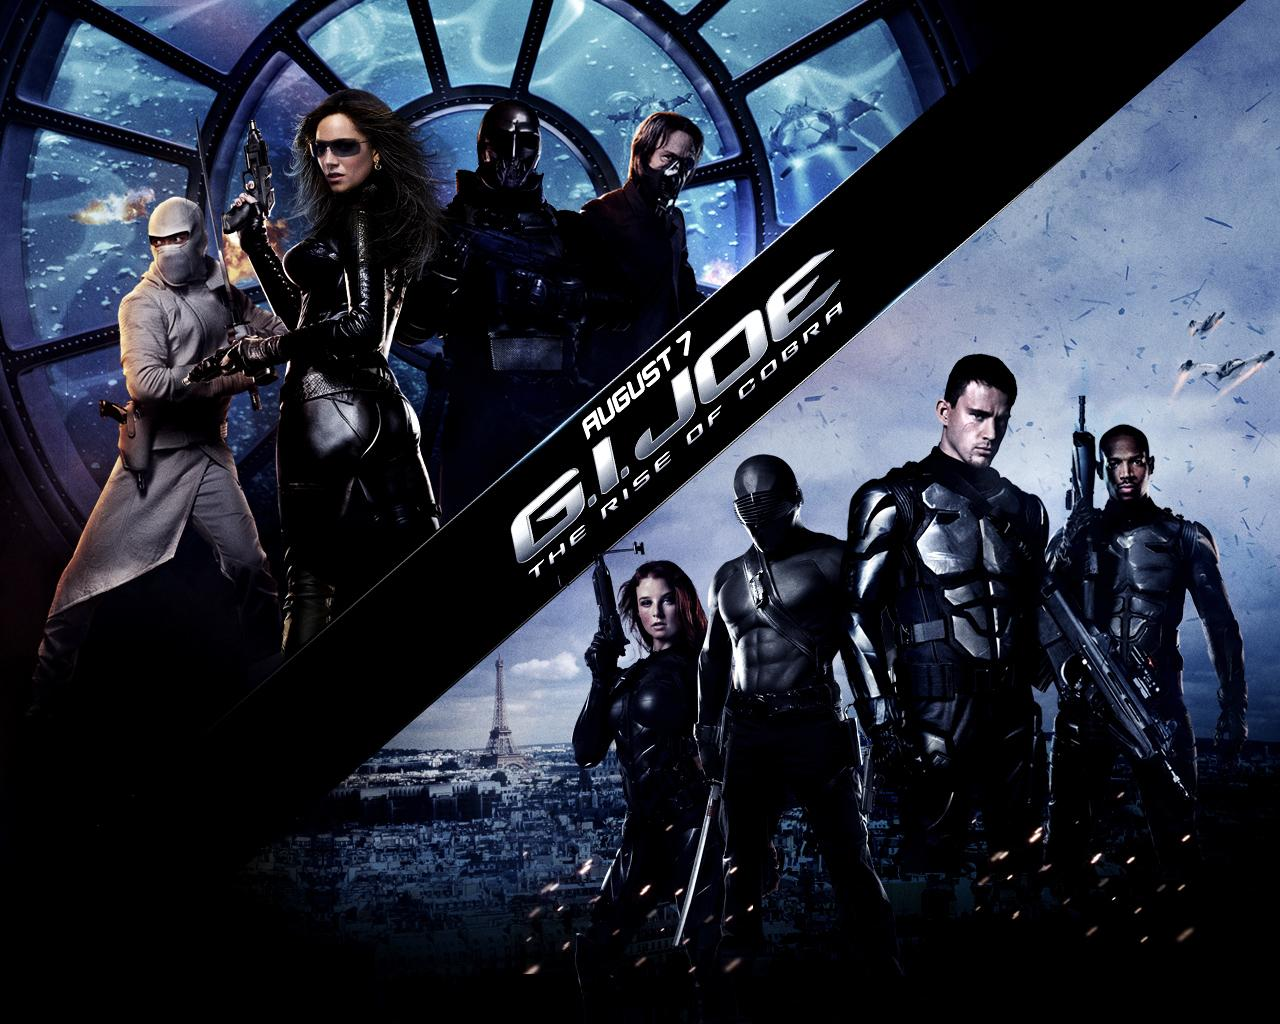 GI Joe The Rise of Cobra Trailers and Wallpapers   Movies 1280x1024